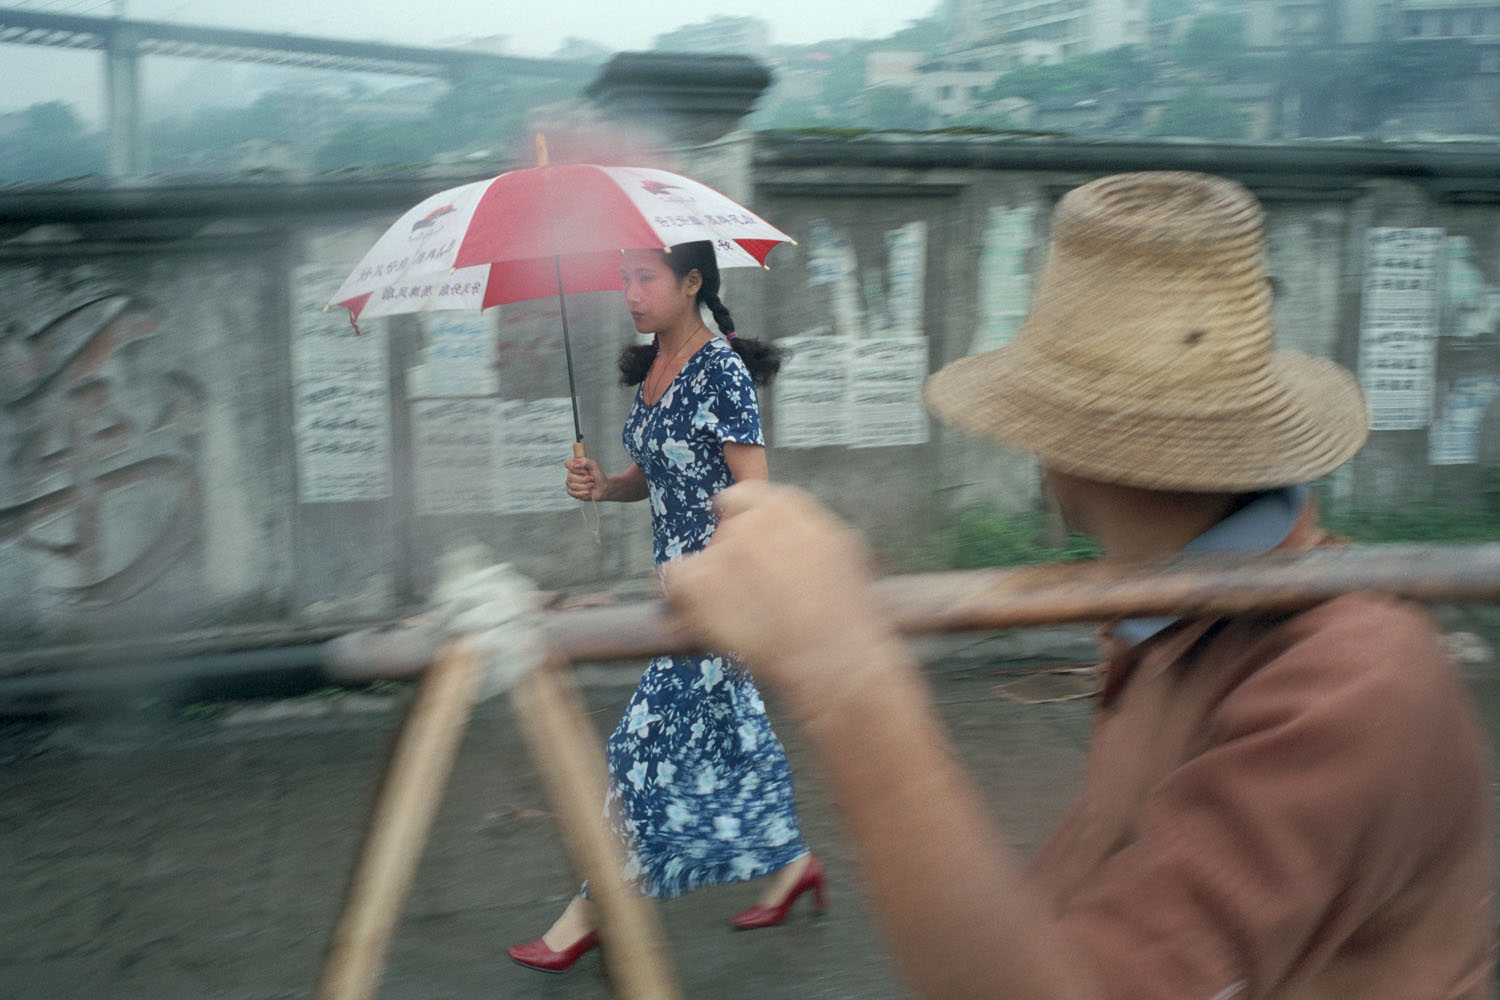 The last vestiges of normal life in a town that has virtually been destroyed. A woman in a bright blue dress and red shoes walks with an umbrella along the sidewalk. The mass exodus of its population has turned the old section of the city into a ghost town. Wanzhou bridge once the defining landmark of the city is now weeks away from being dynamited.